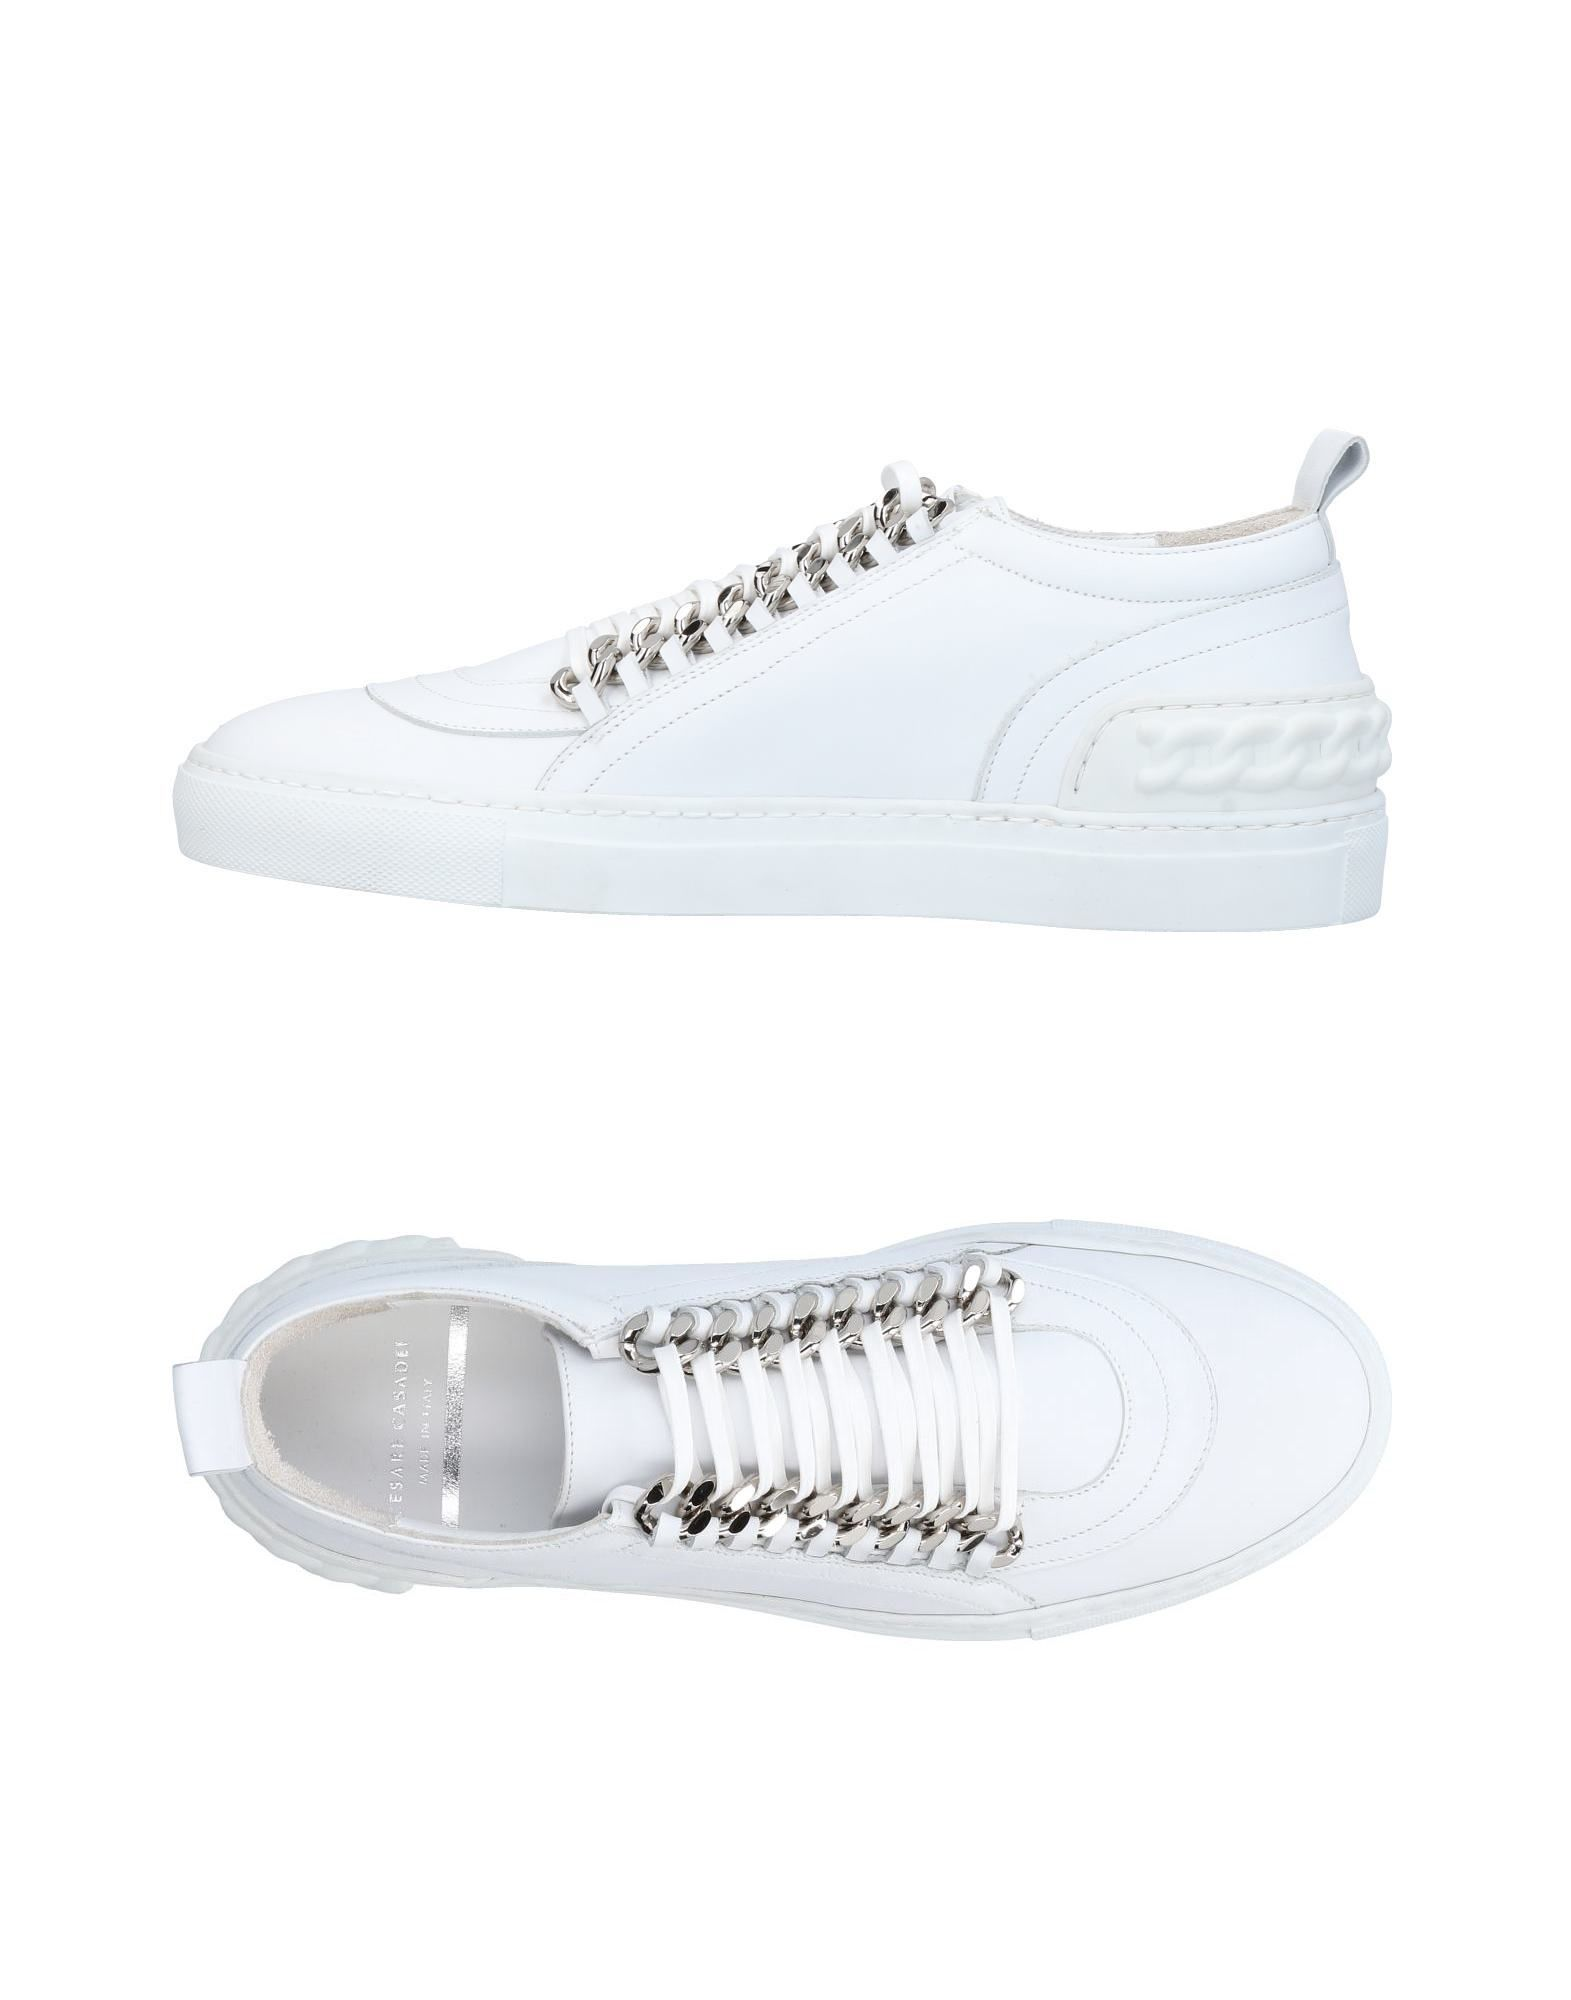 CESARE CASADEI Sneakers in White